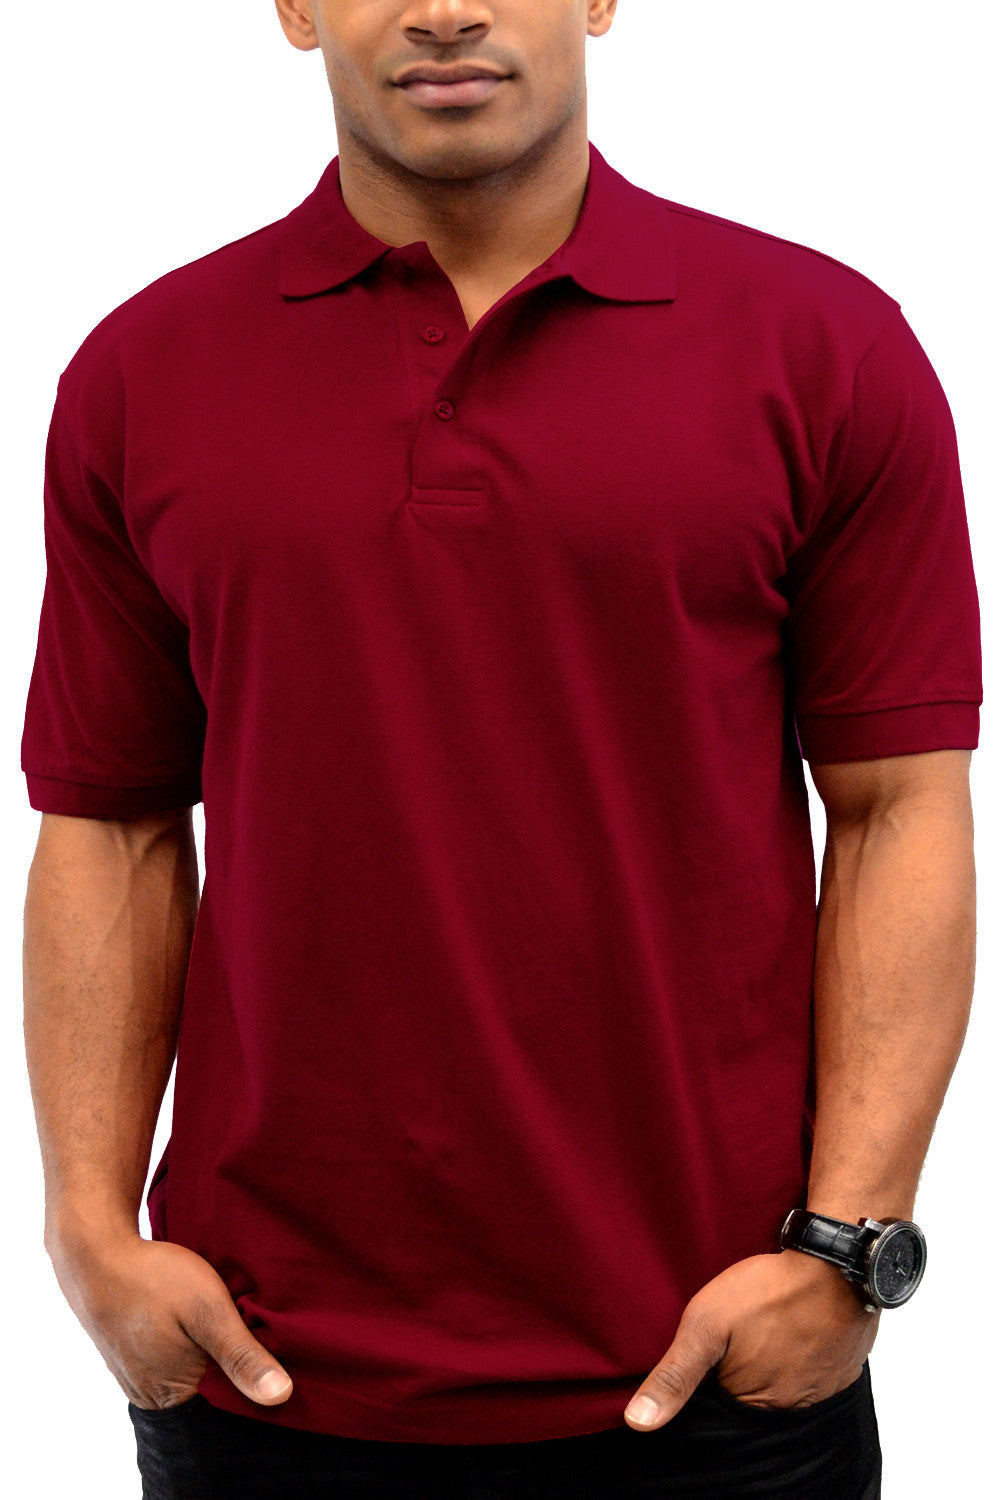 Classic Polo Shirt 2XL-5XL - Pro 5 Apparel